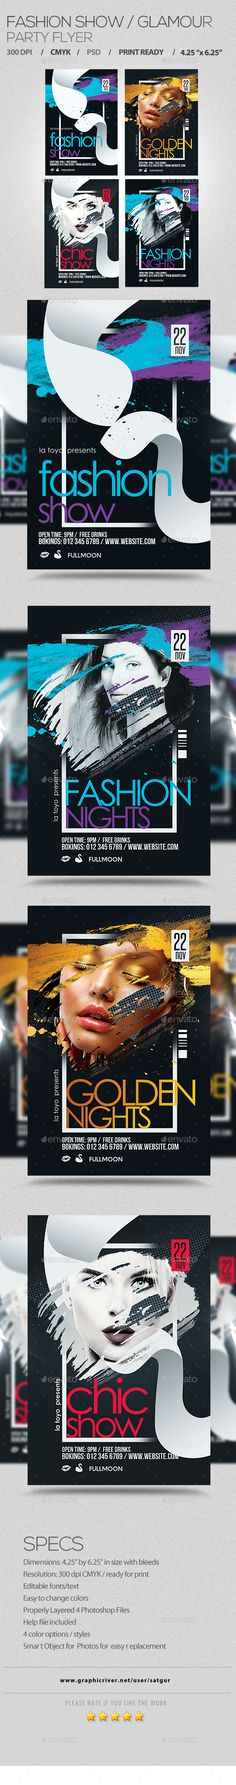 Fashion Show / Glamour Flyer Template PSD #design Download: http://graphicriver.net/item/fashion-show-glamour-flyer/13711887?ref=ksioks